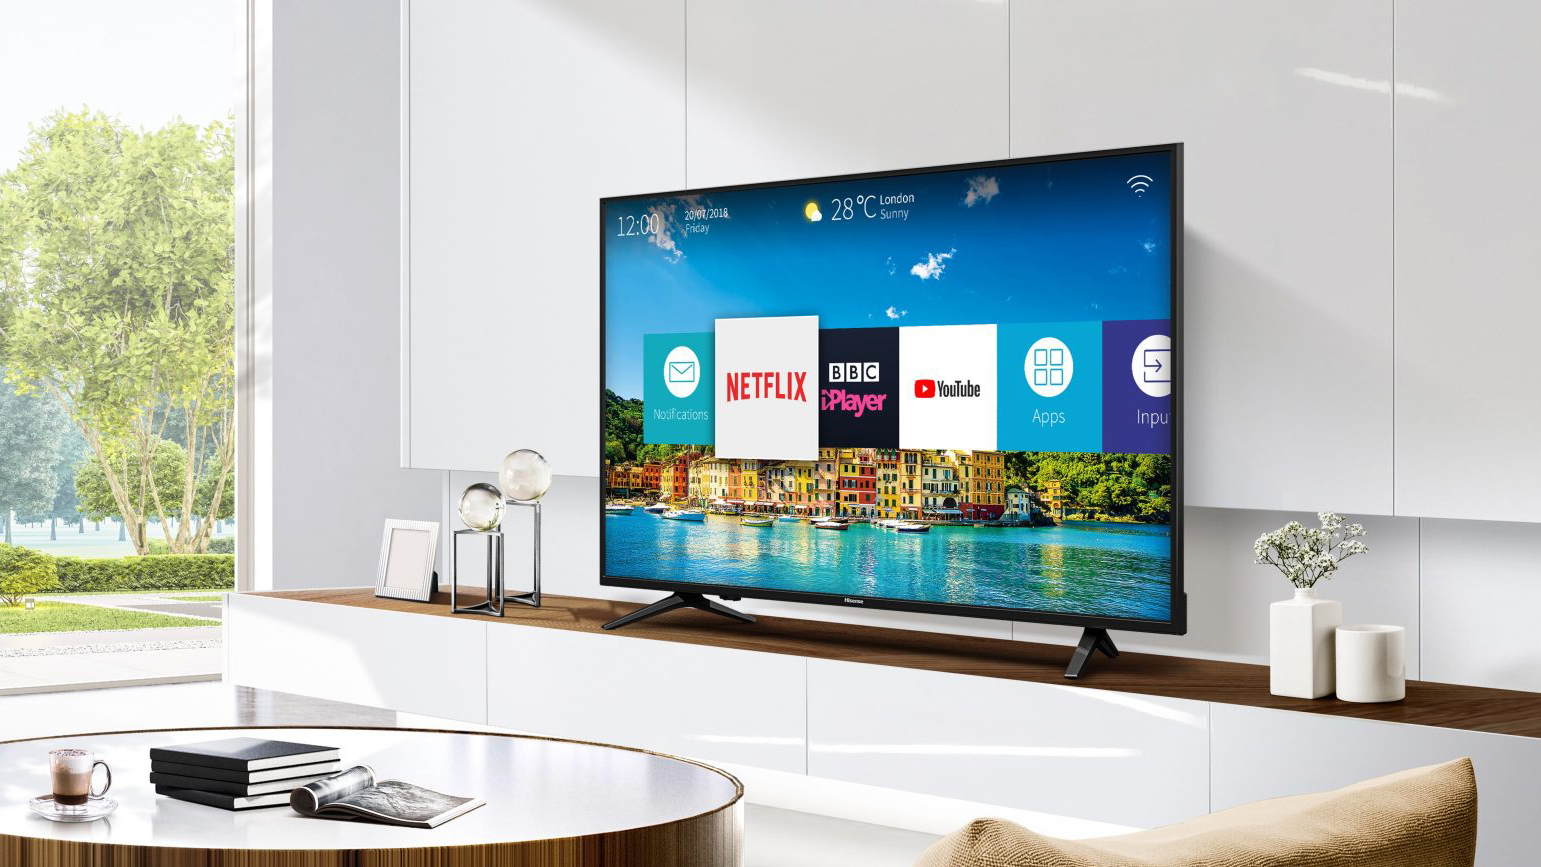 Buy A Tv Should I Buy A Hisense Tv A Look At The Budget 4k Television